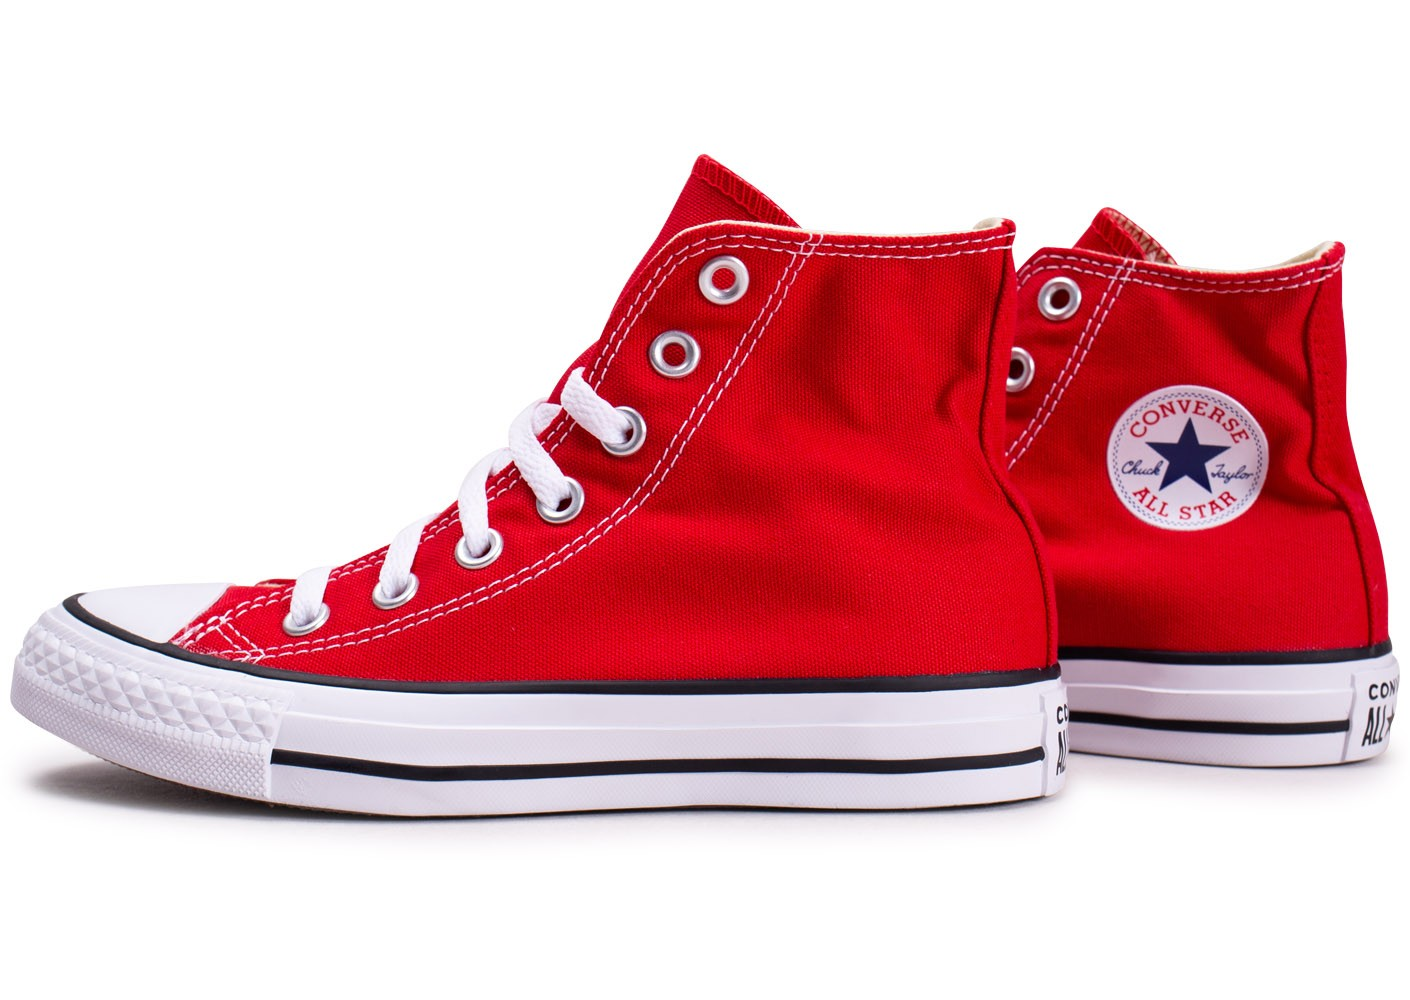 Converse Chuck Taylor All Star Hi rouge femme - Chaussures ...